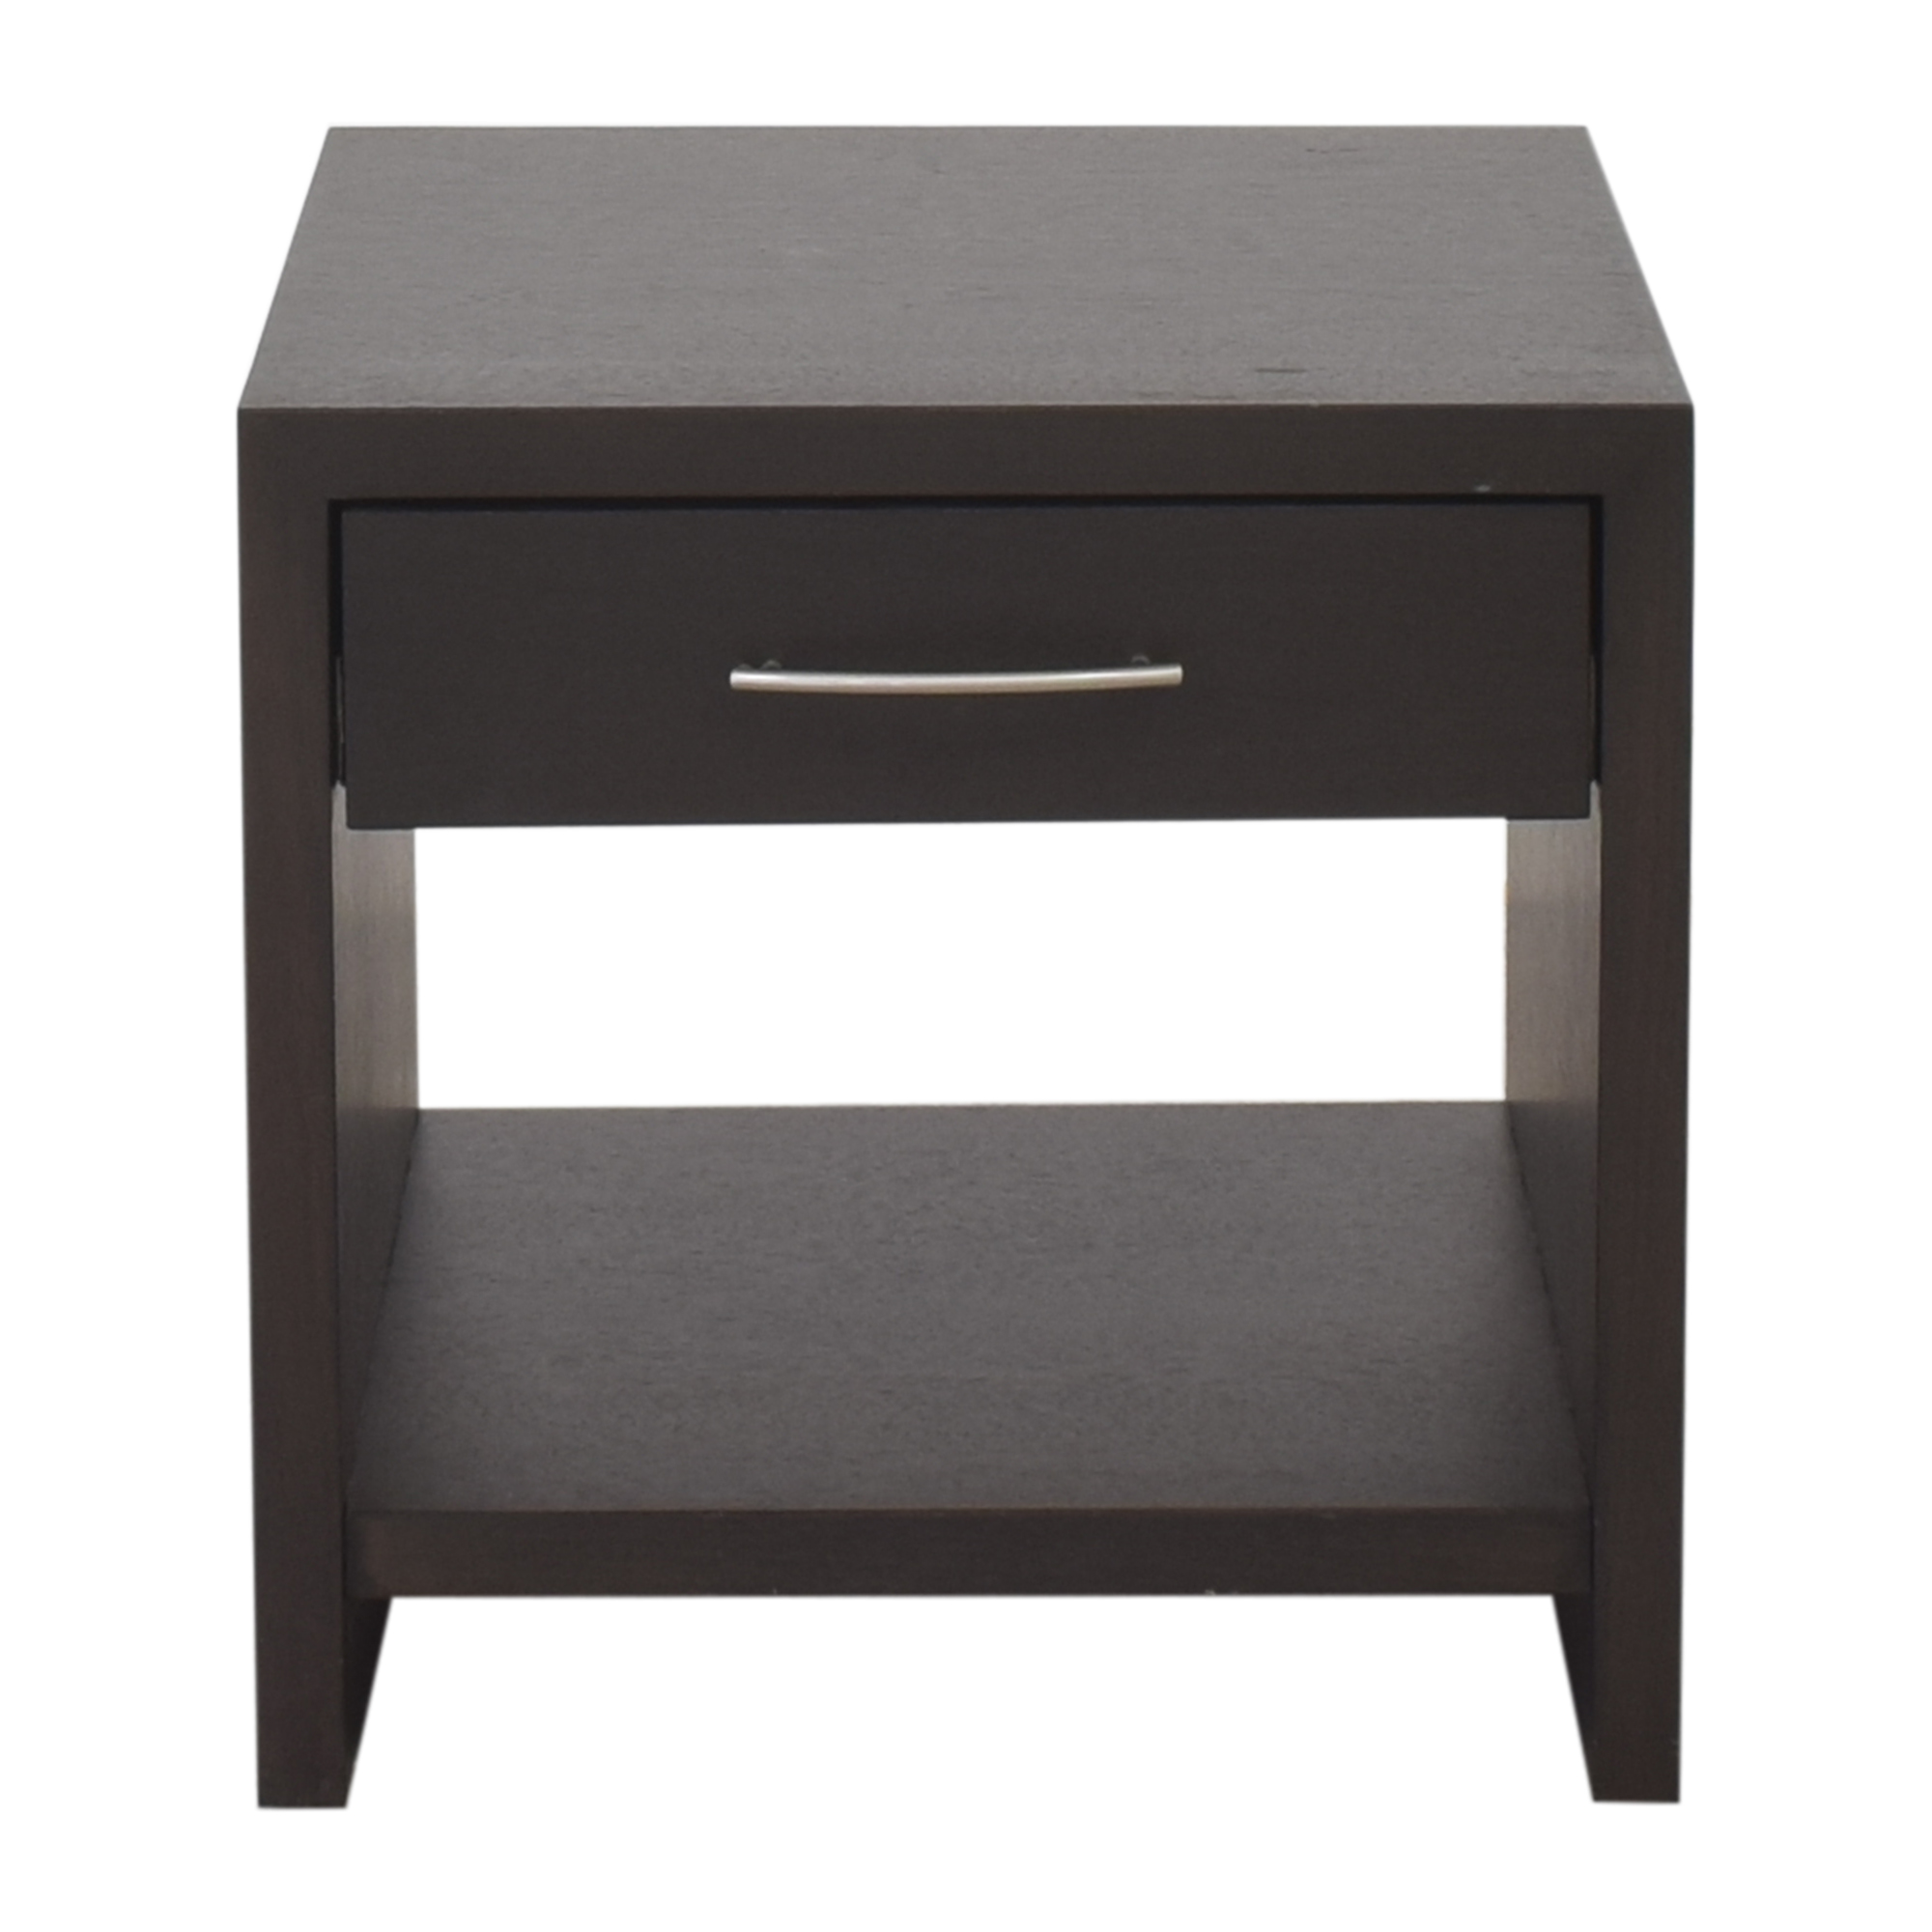 buy Domus Design Center Modern Nightstand Domus Design Center